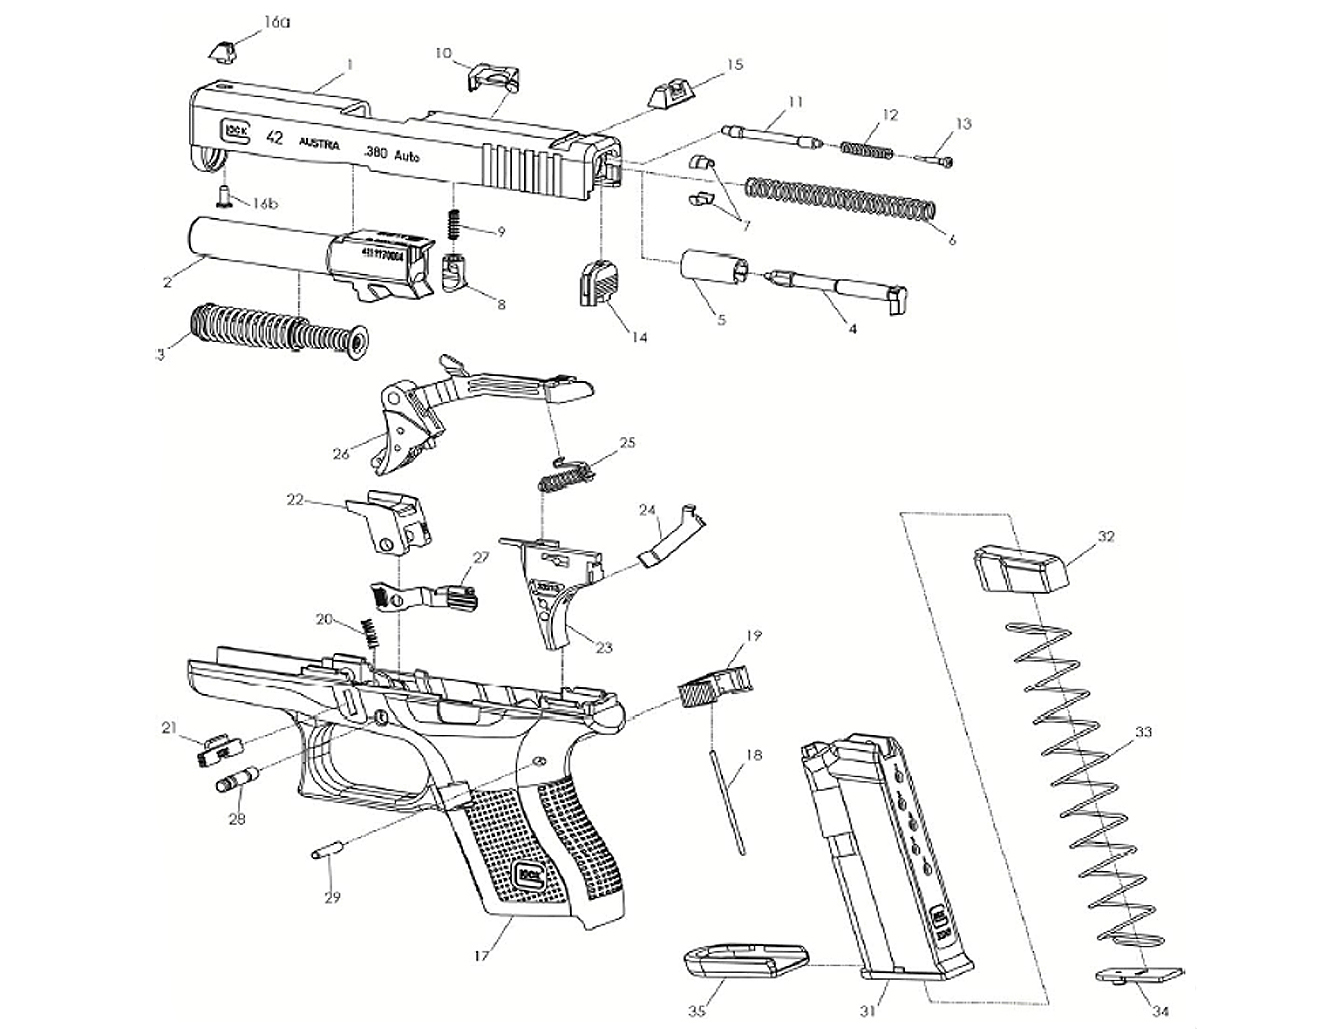 42 glock assembly diagram